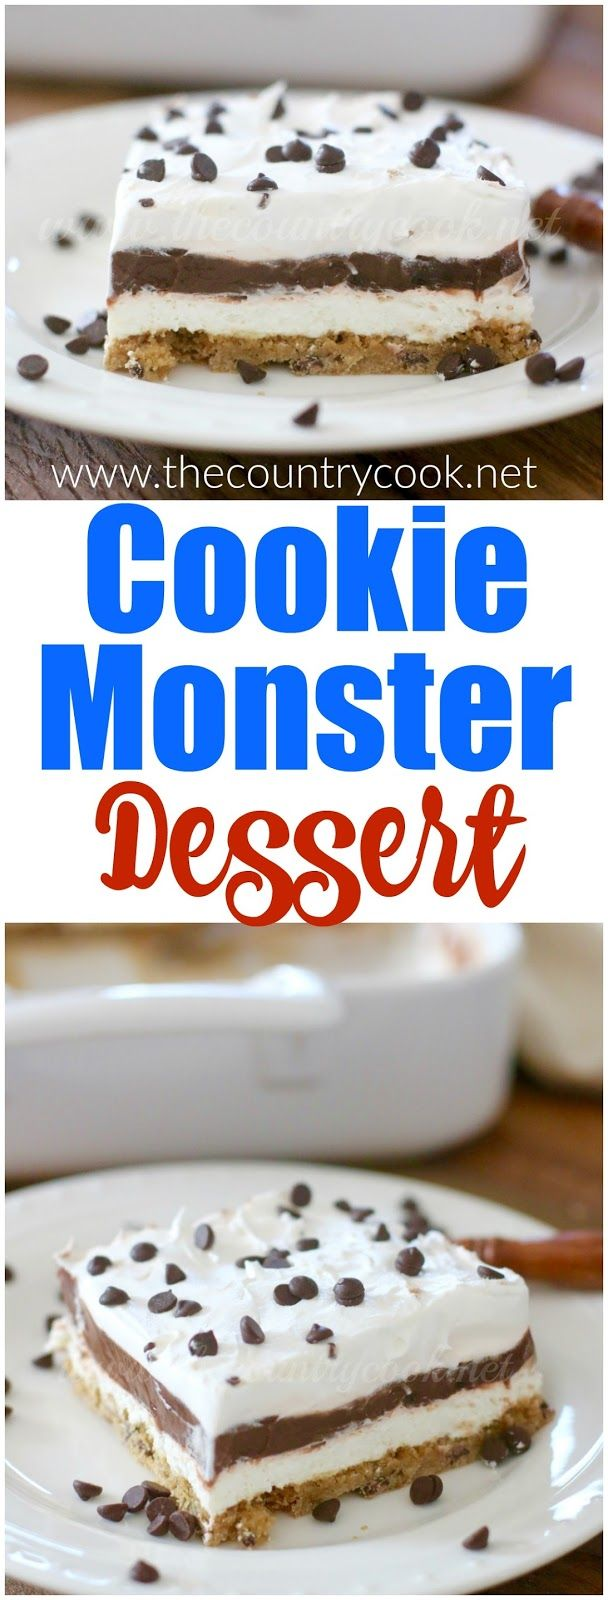 Cookie Monster Dessert. A layered dessert recipe from The Country Cook.